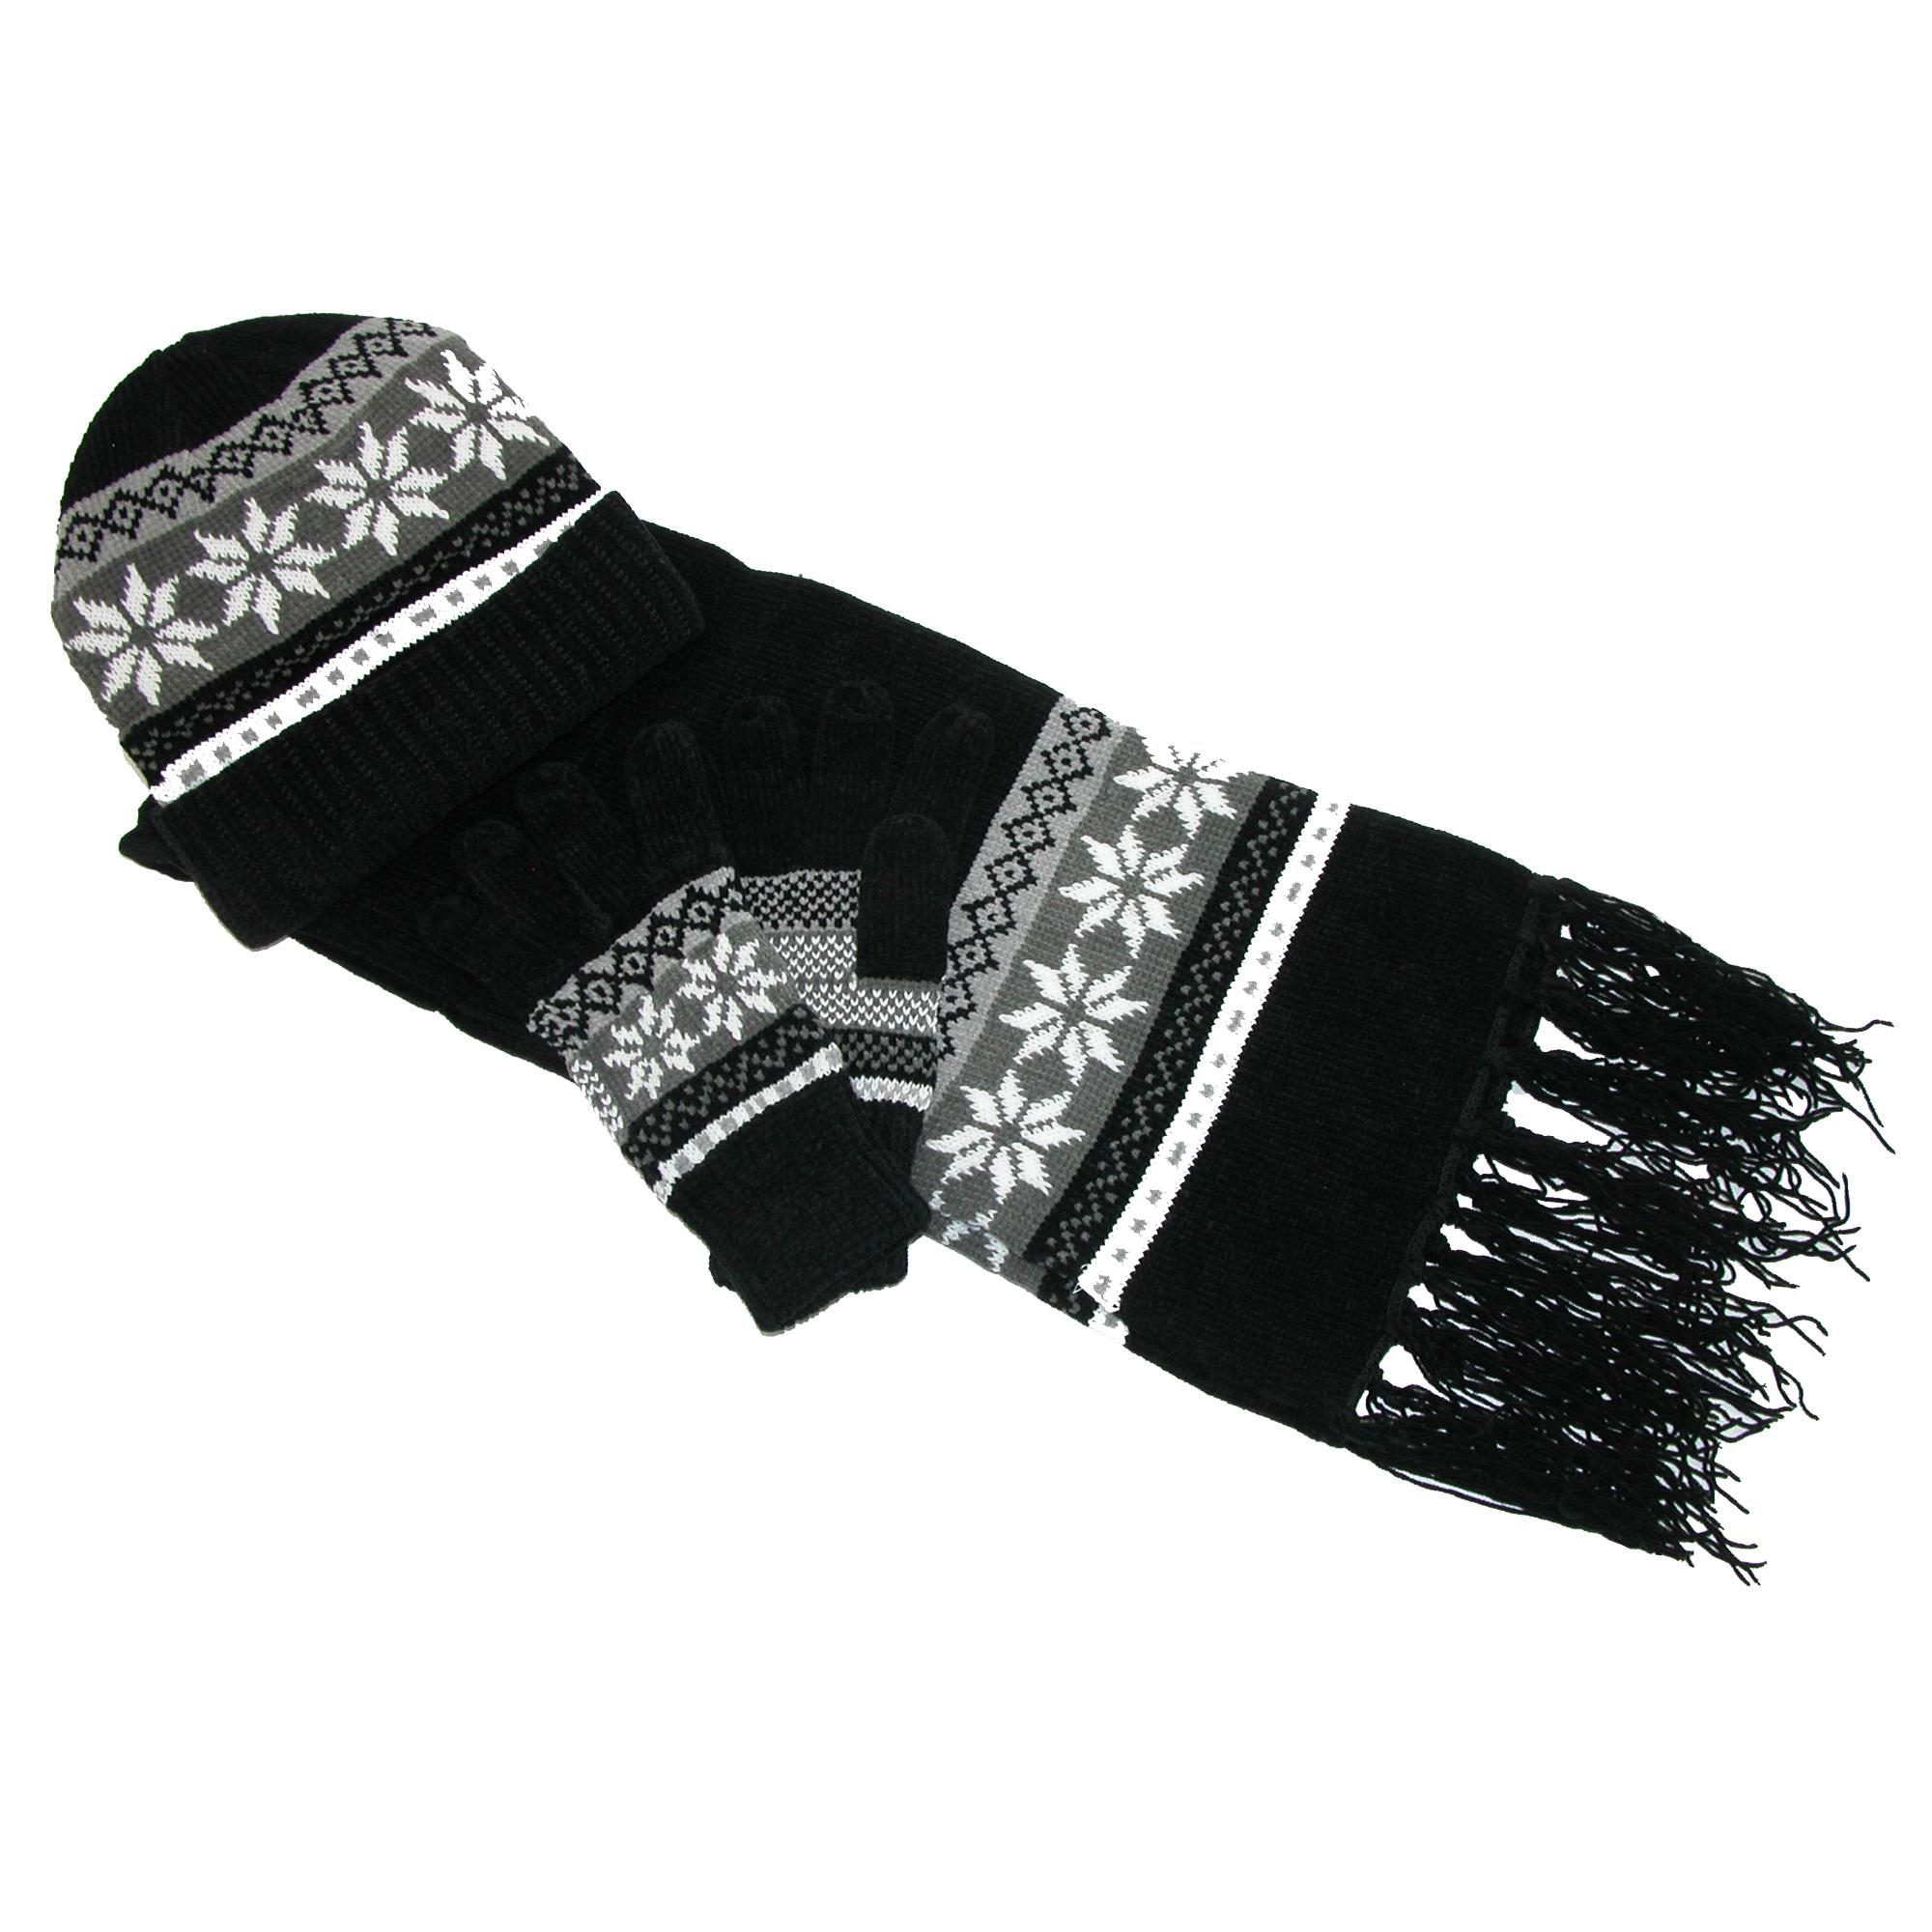 Women's Muk Luks Reversible Eternity Scarf, Hat, Gloves, and Arm Warmers Set. Some of colors are white, rose, taupe and plum.